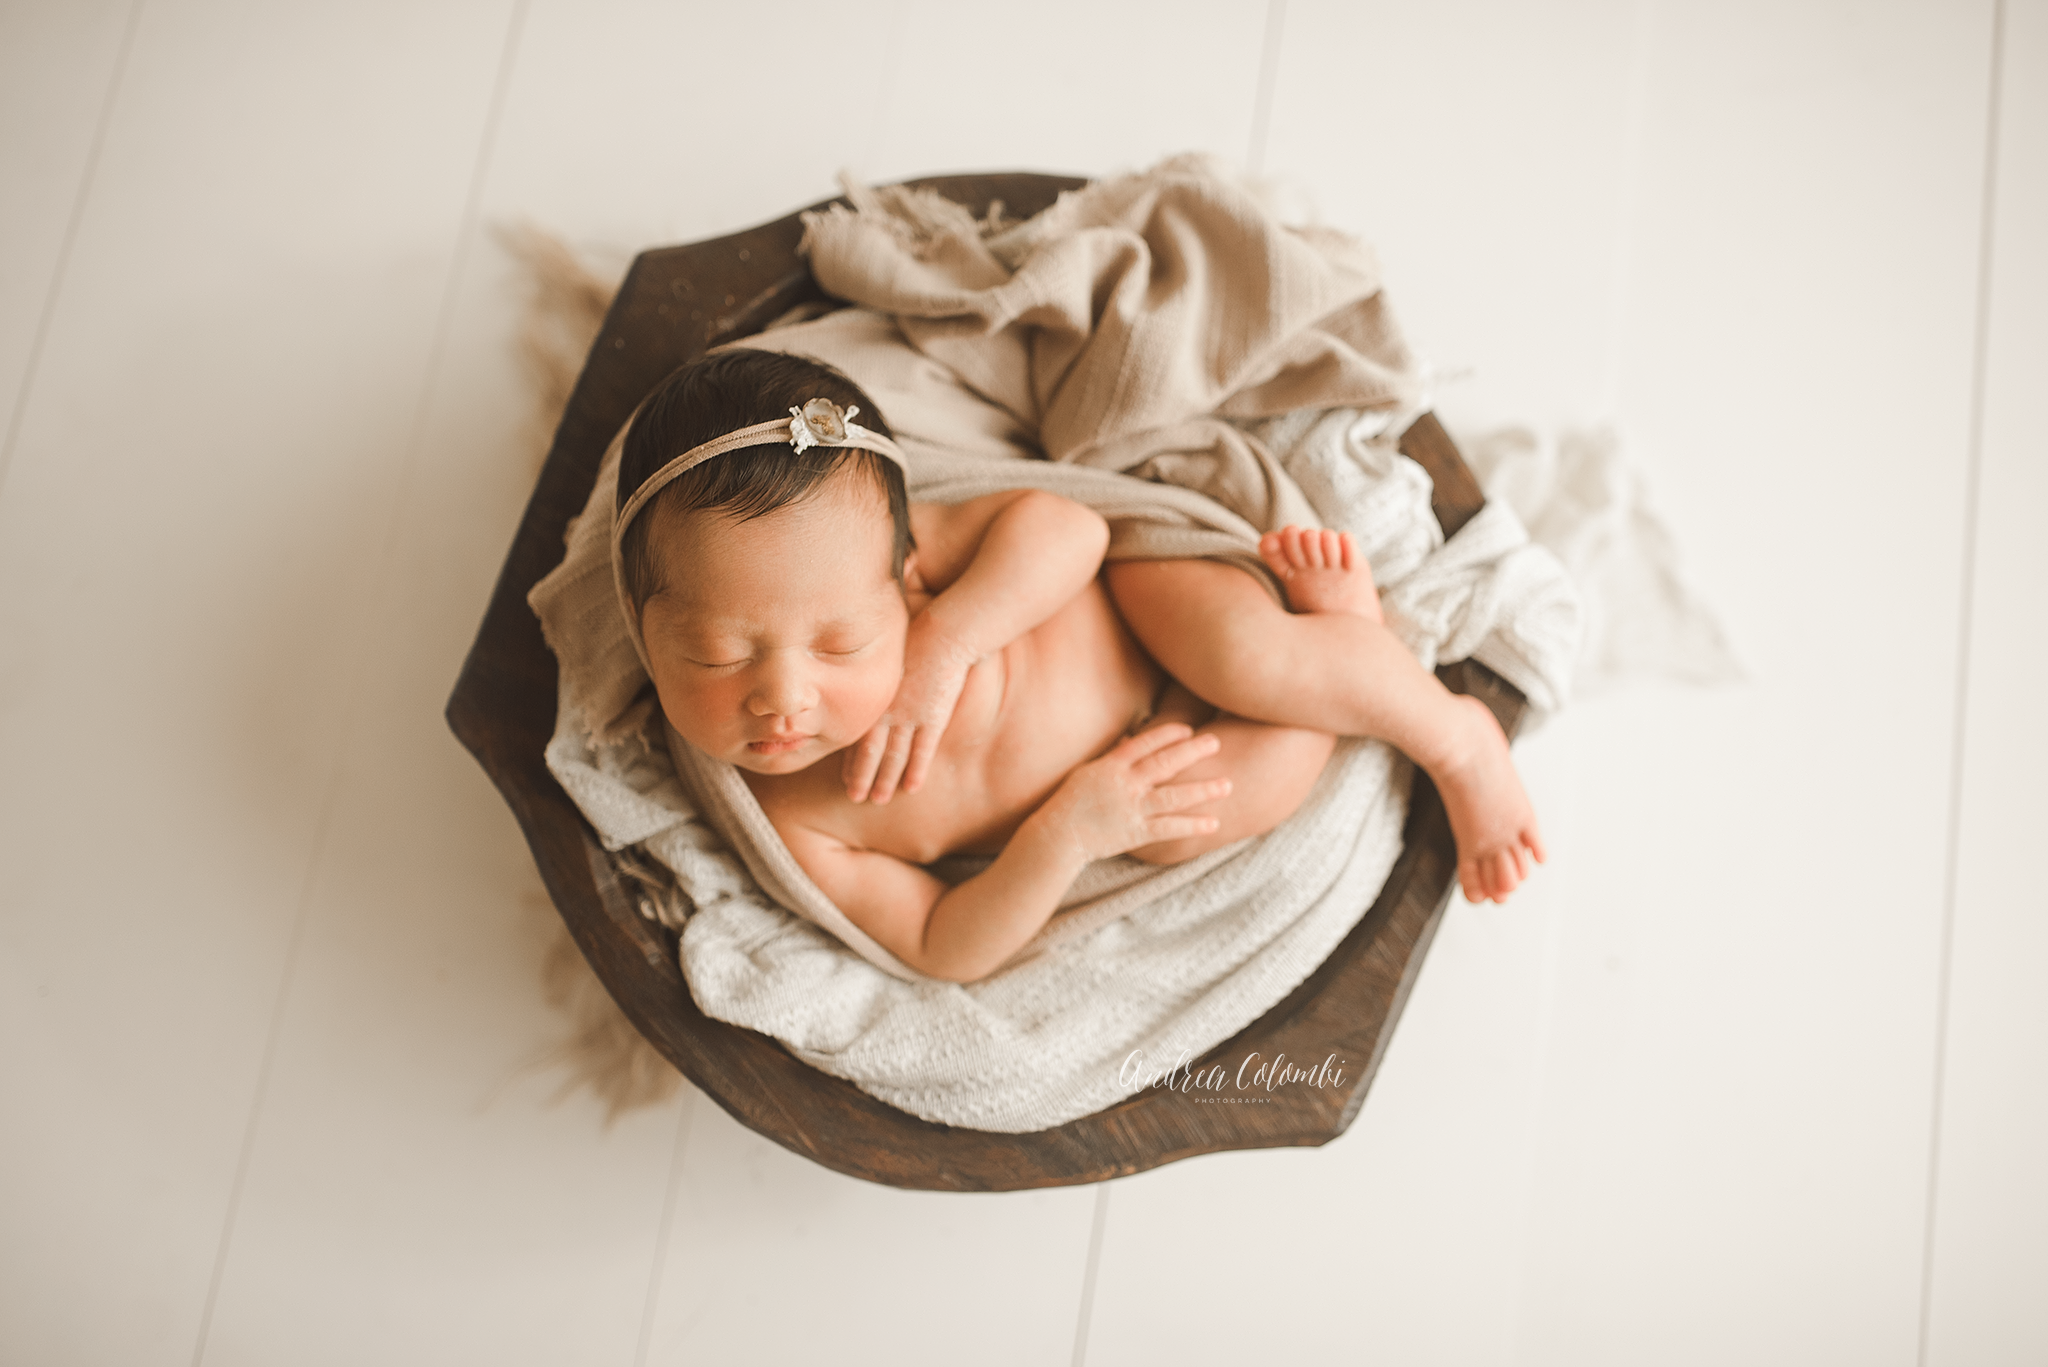 South Florida Newborn Photographer Maternity & Family Portrait Photographer